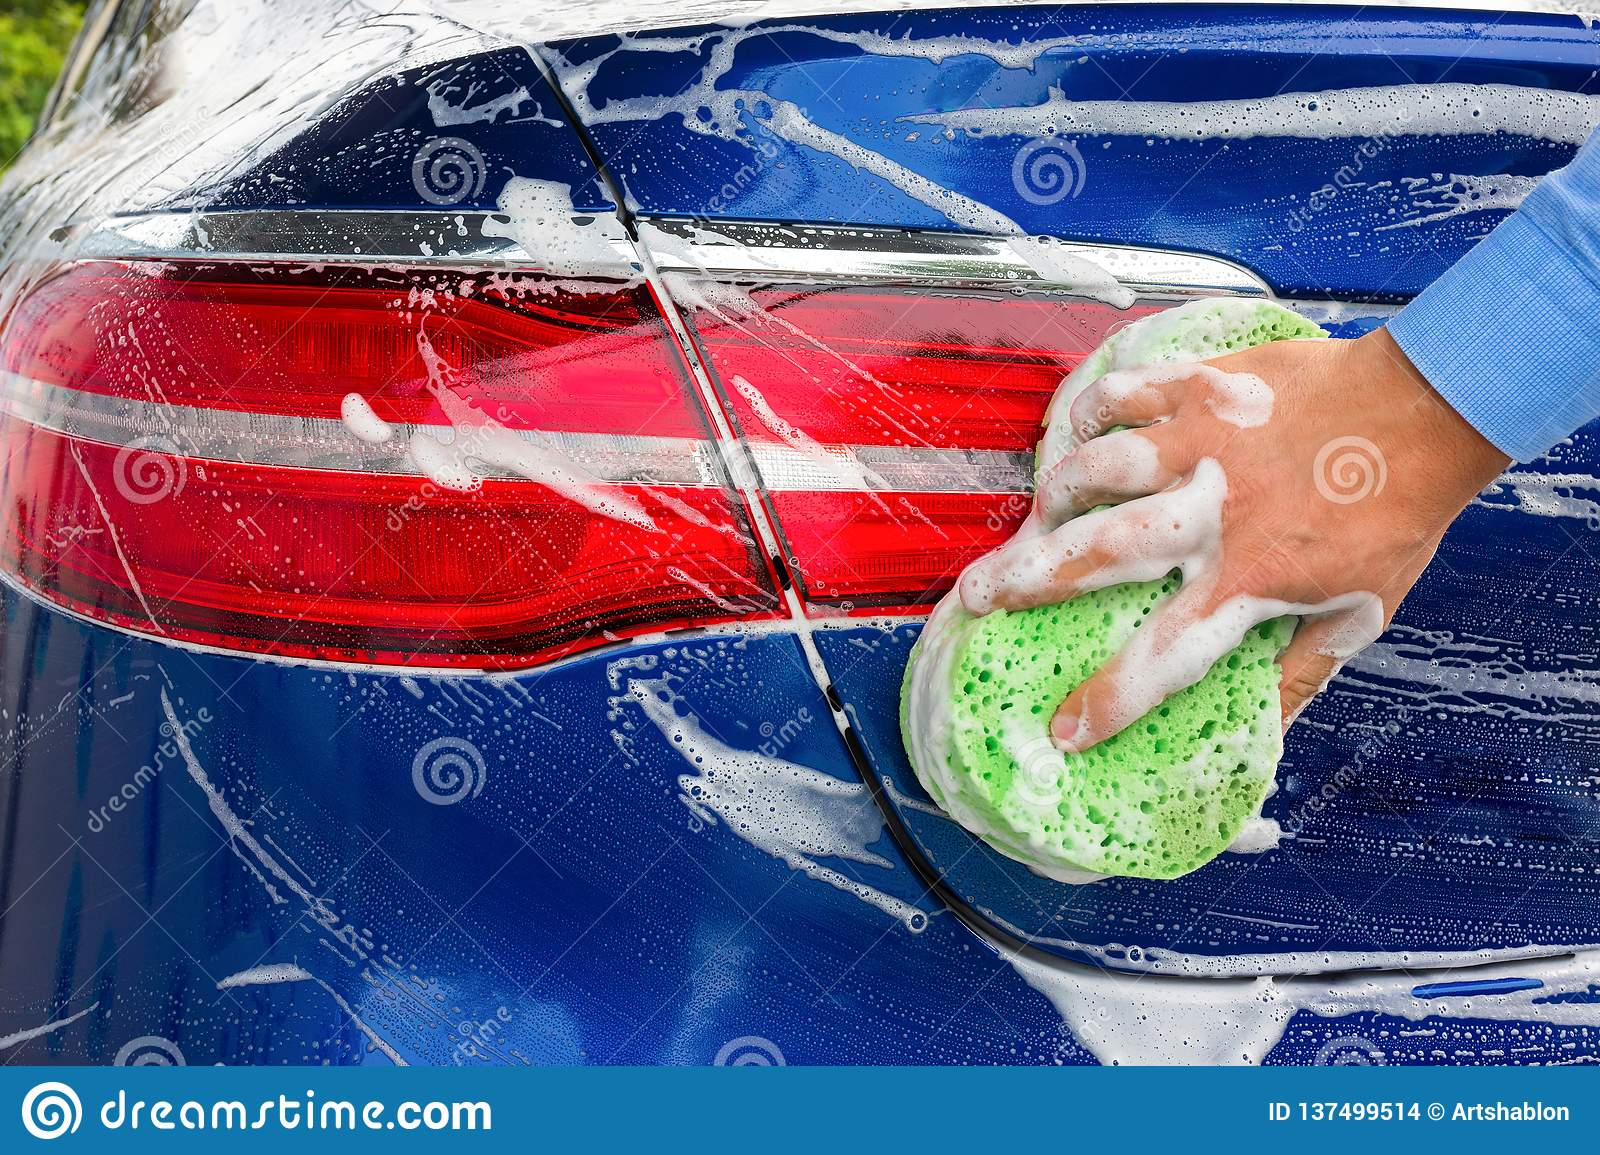 Hand of the person with a sponge, the washing blue car. Close-up